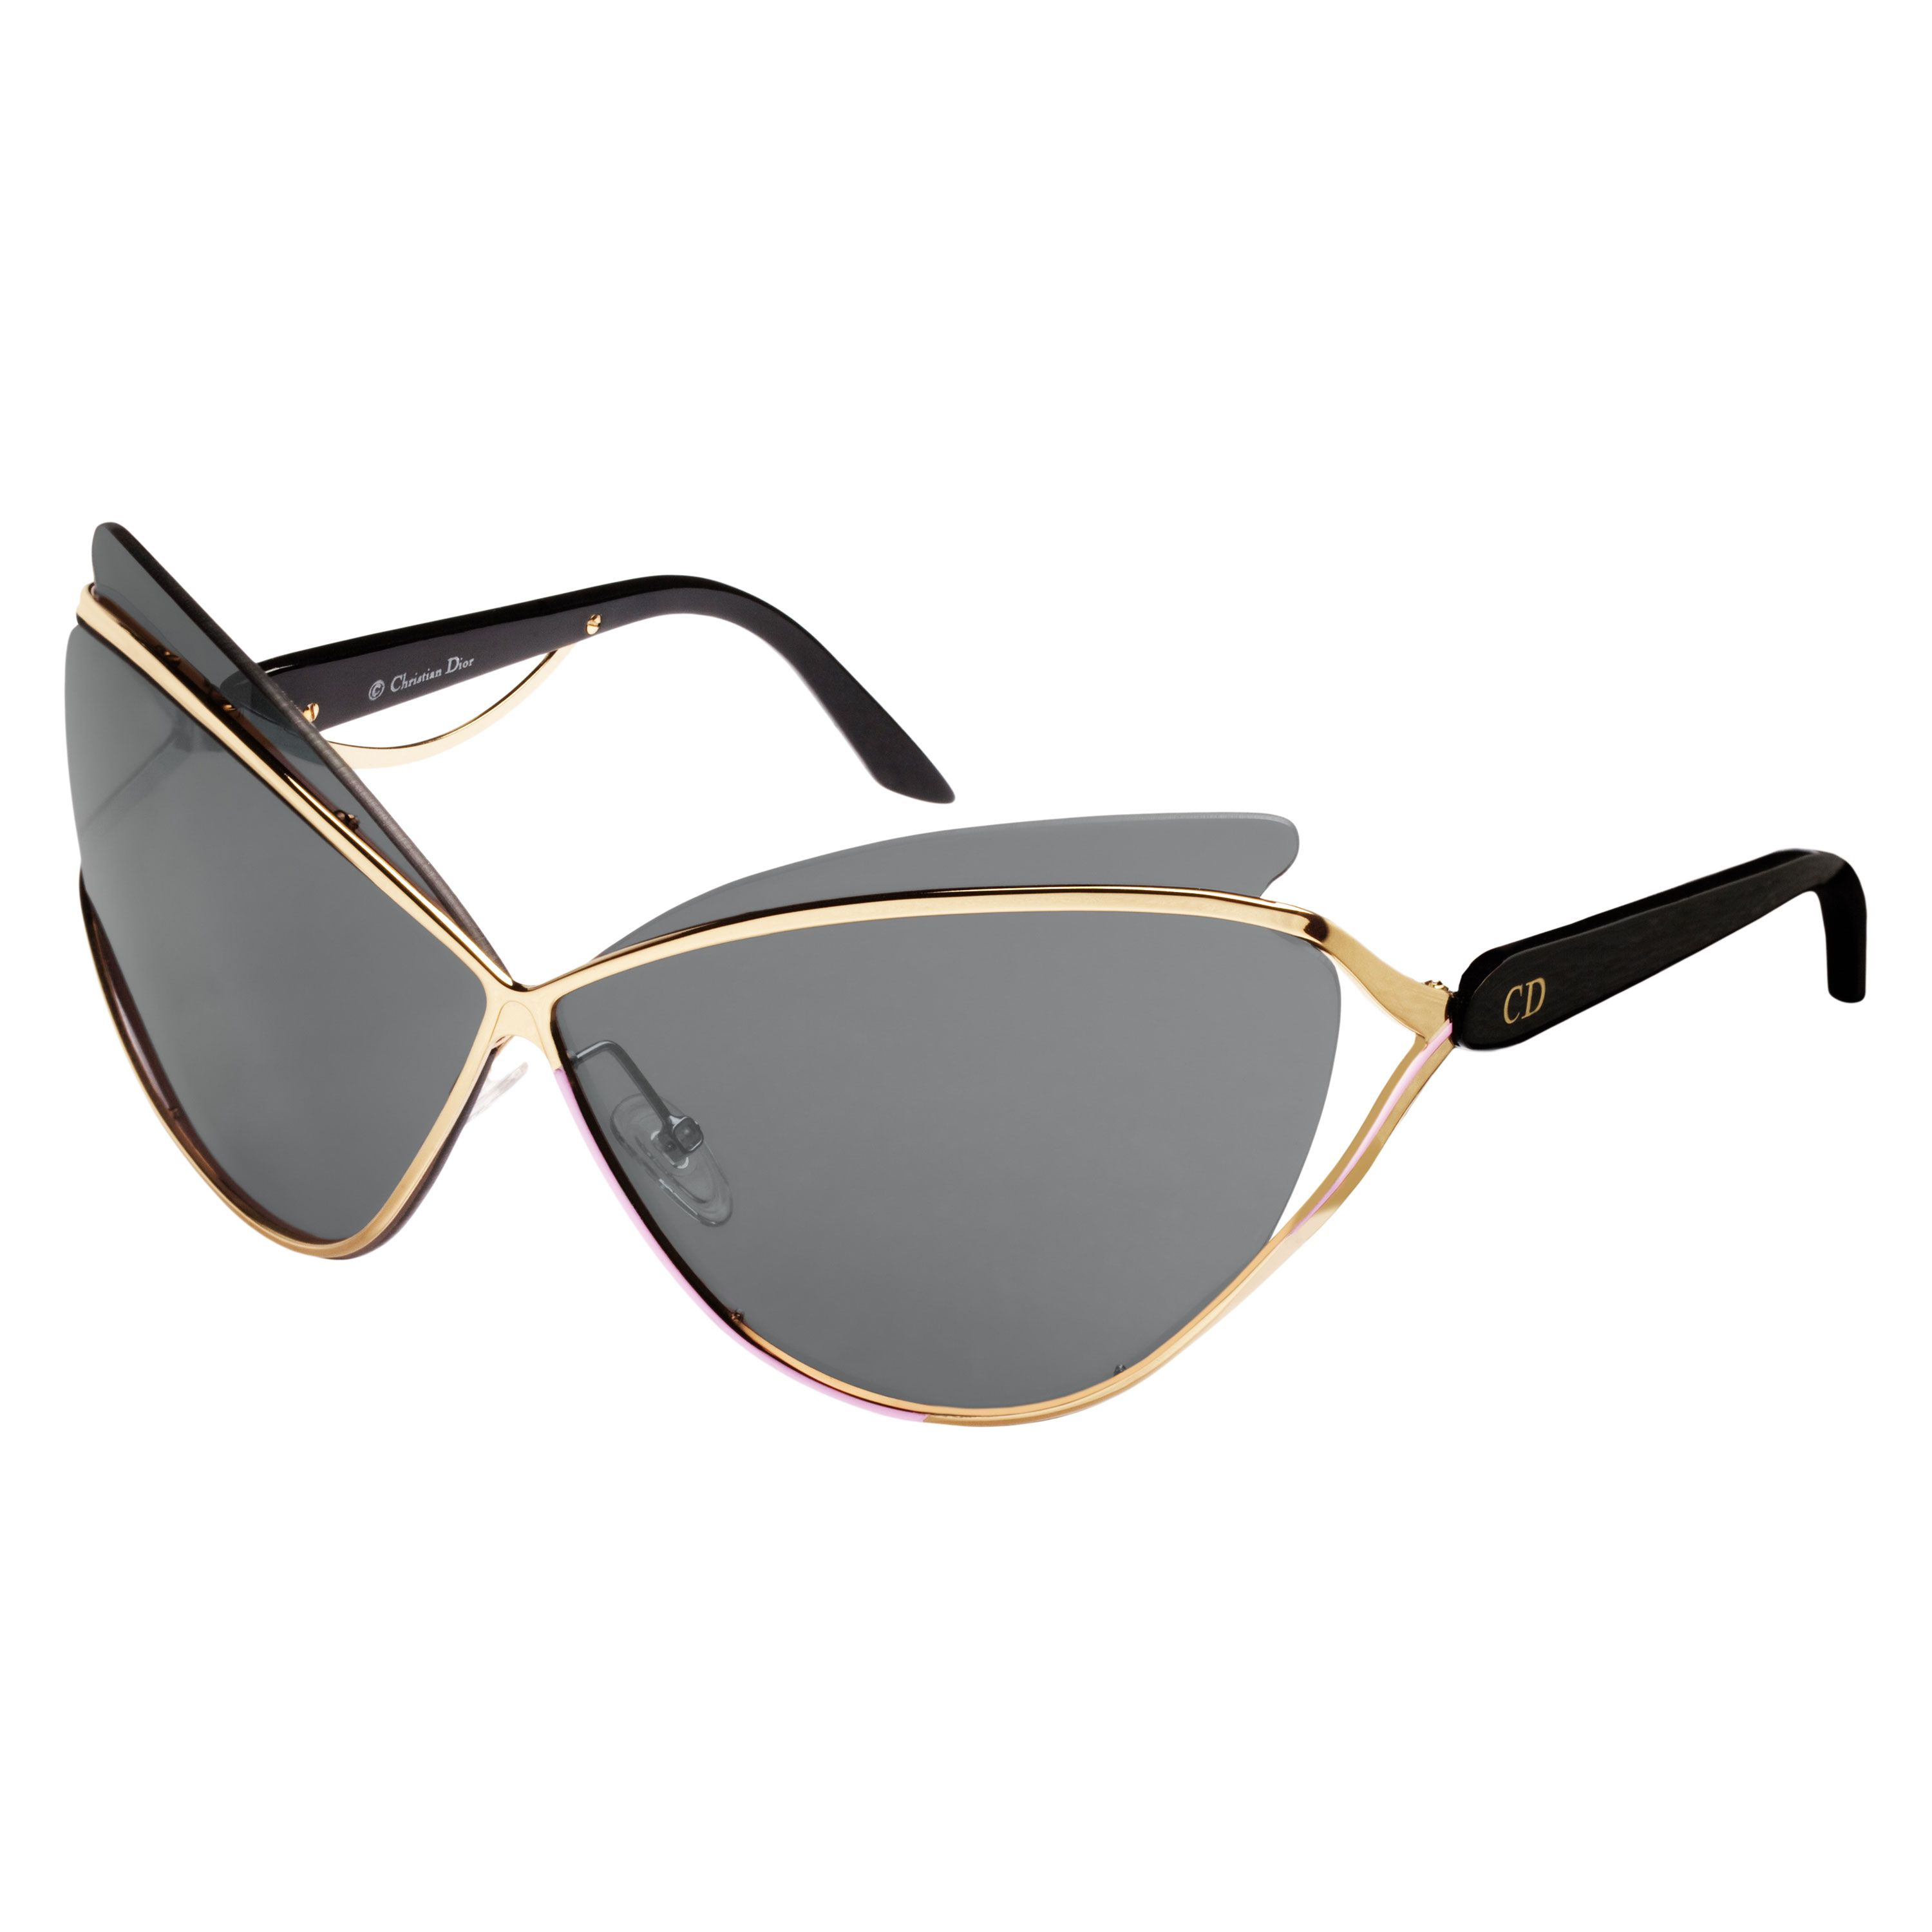 DiorAudacieuse1  sunglasses from the Winter 2013 runway   She s A ... 4f5714355ea3